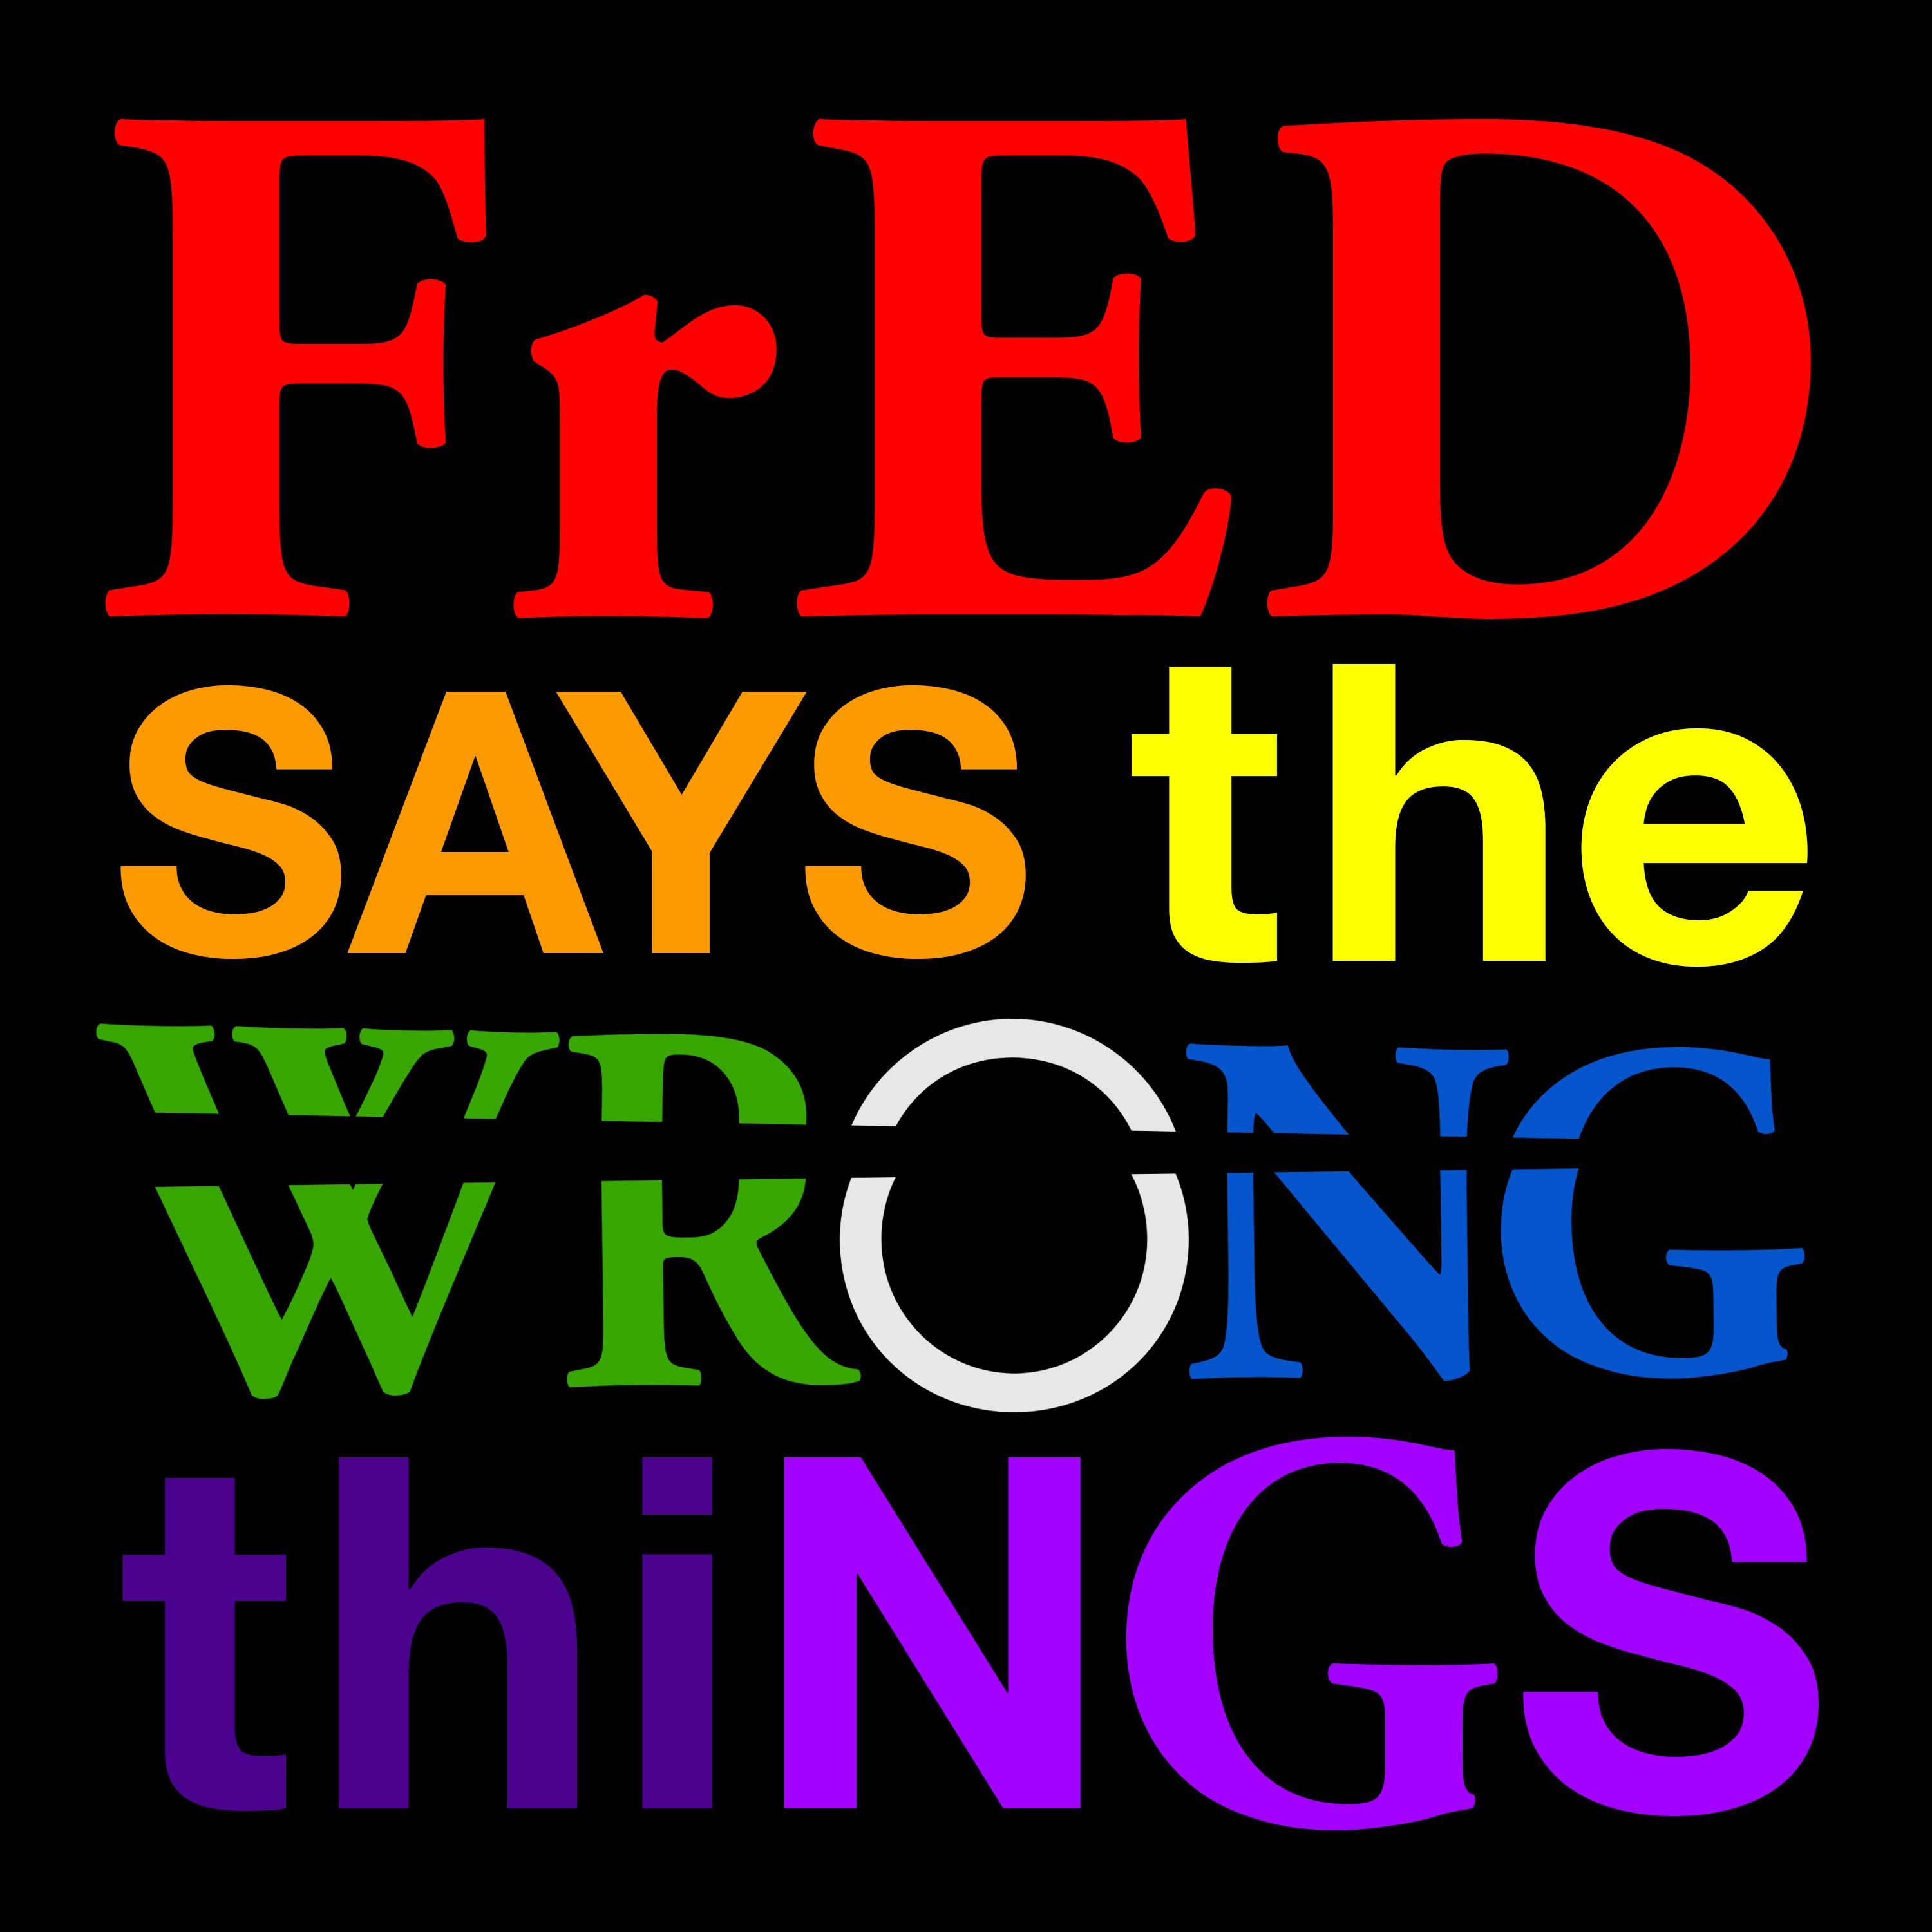 Fred Says the Wrong Things